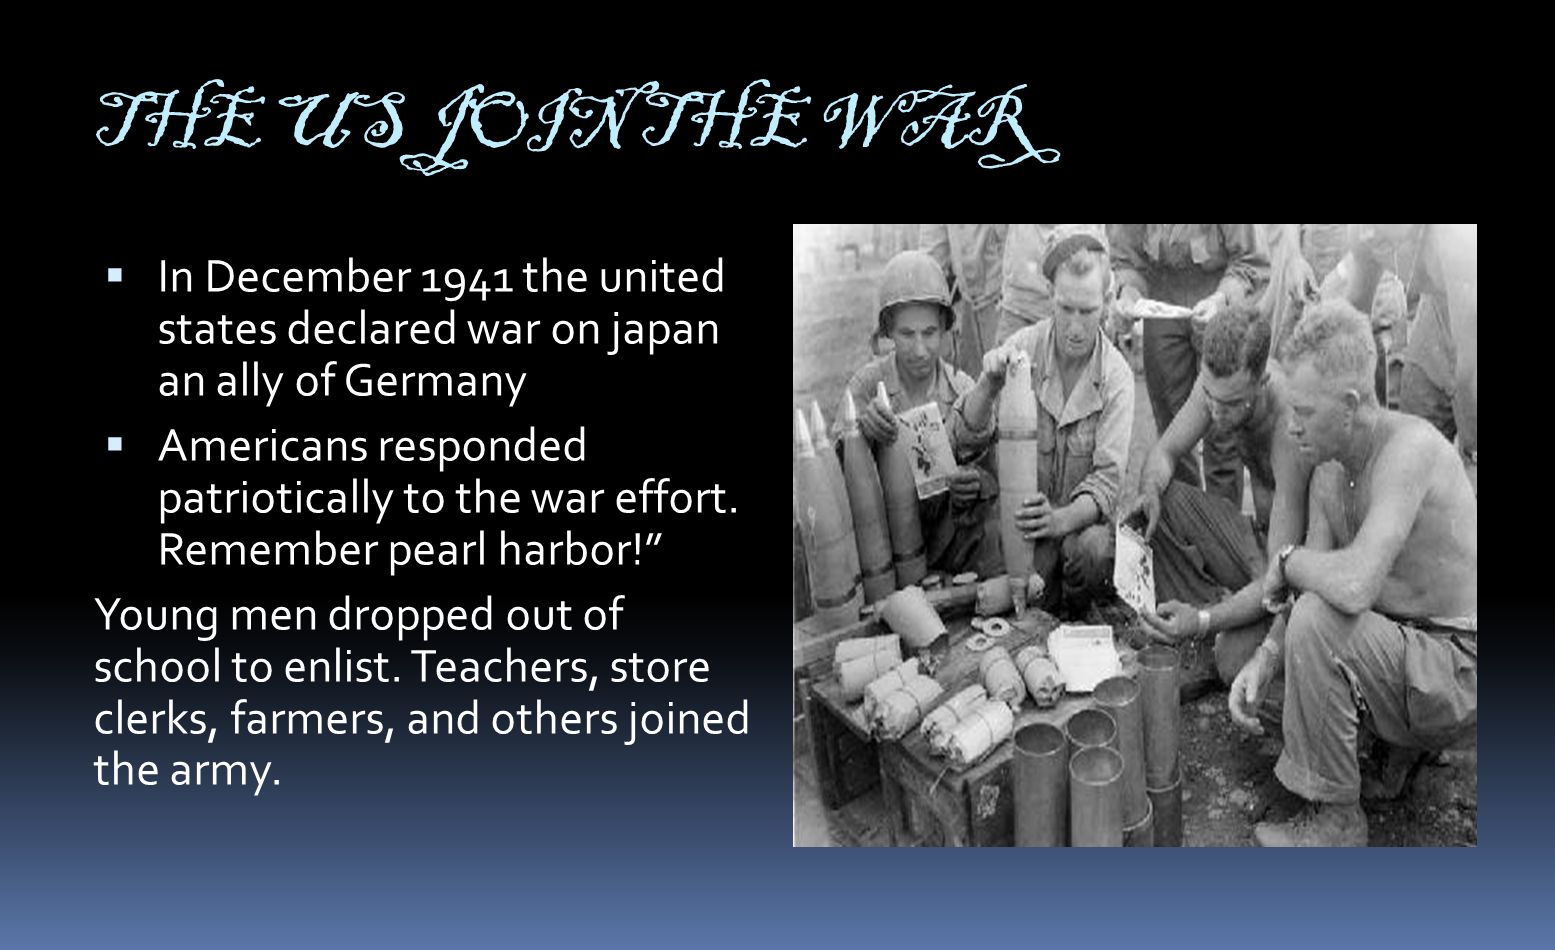 THE US JOIN THE WAR  In December 1941 the united states declared war on japan an ally of Germany  Americans responded patriotically to the war effort.